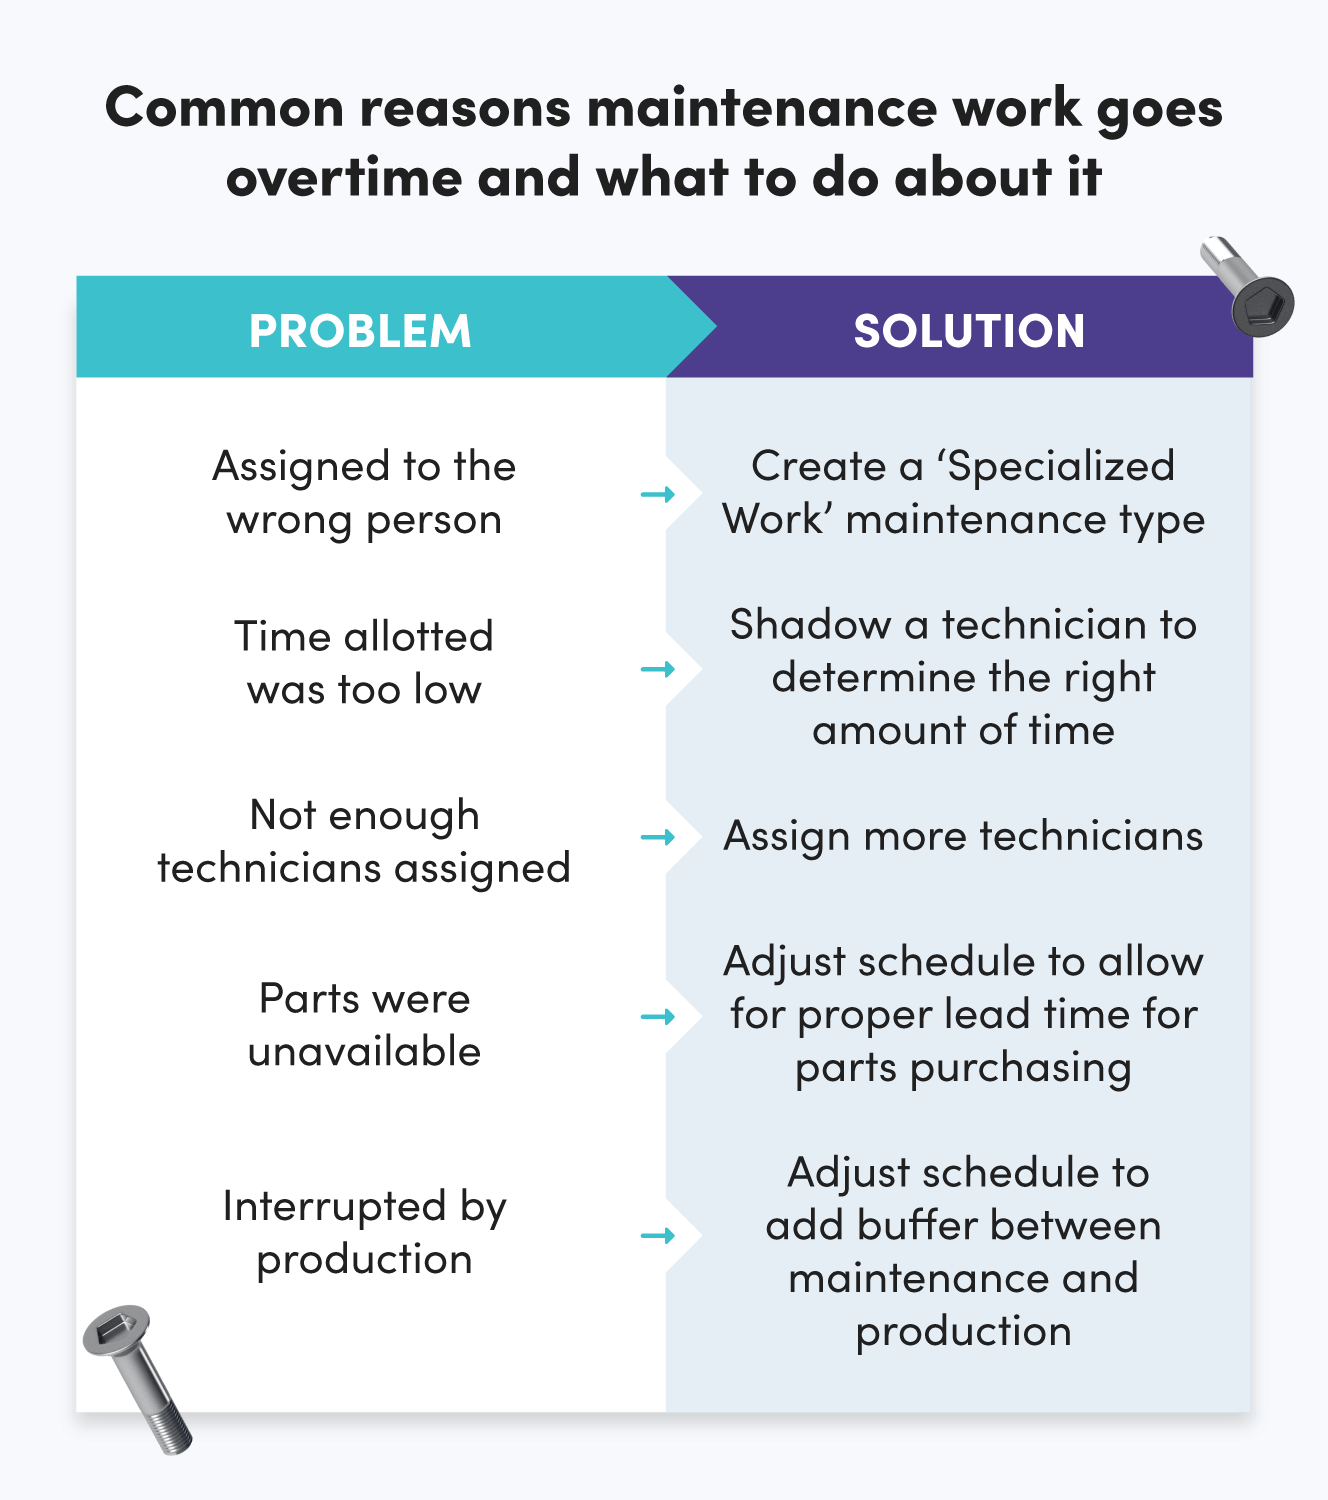 Common reasons maintenance work goes overtime and what to do about it